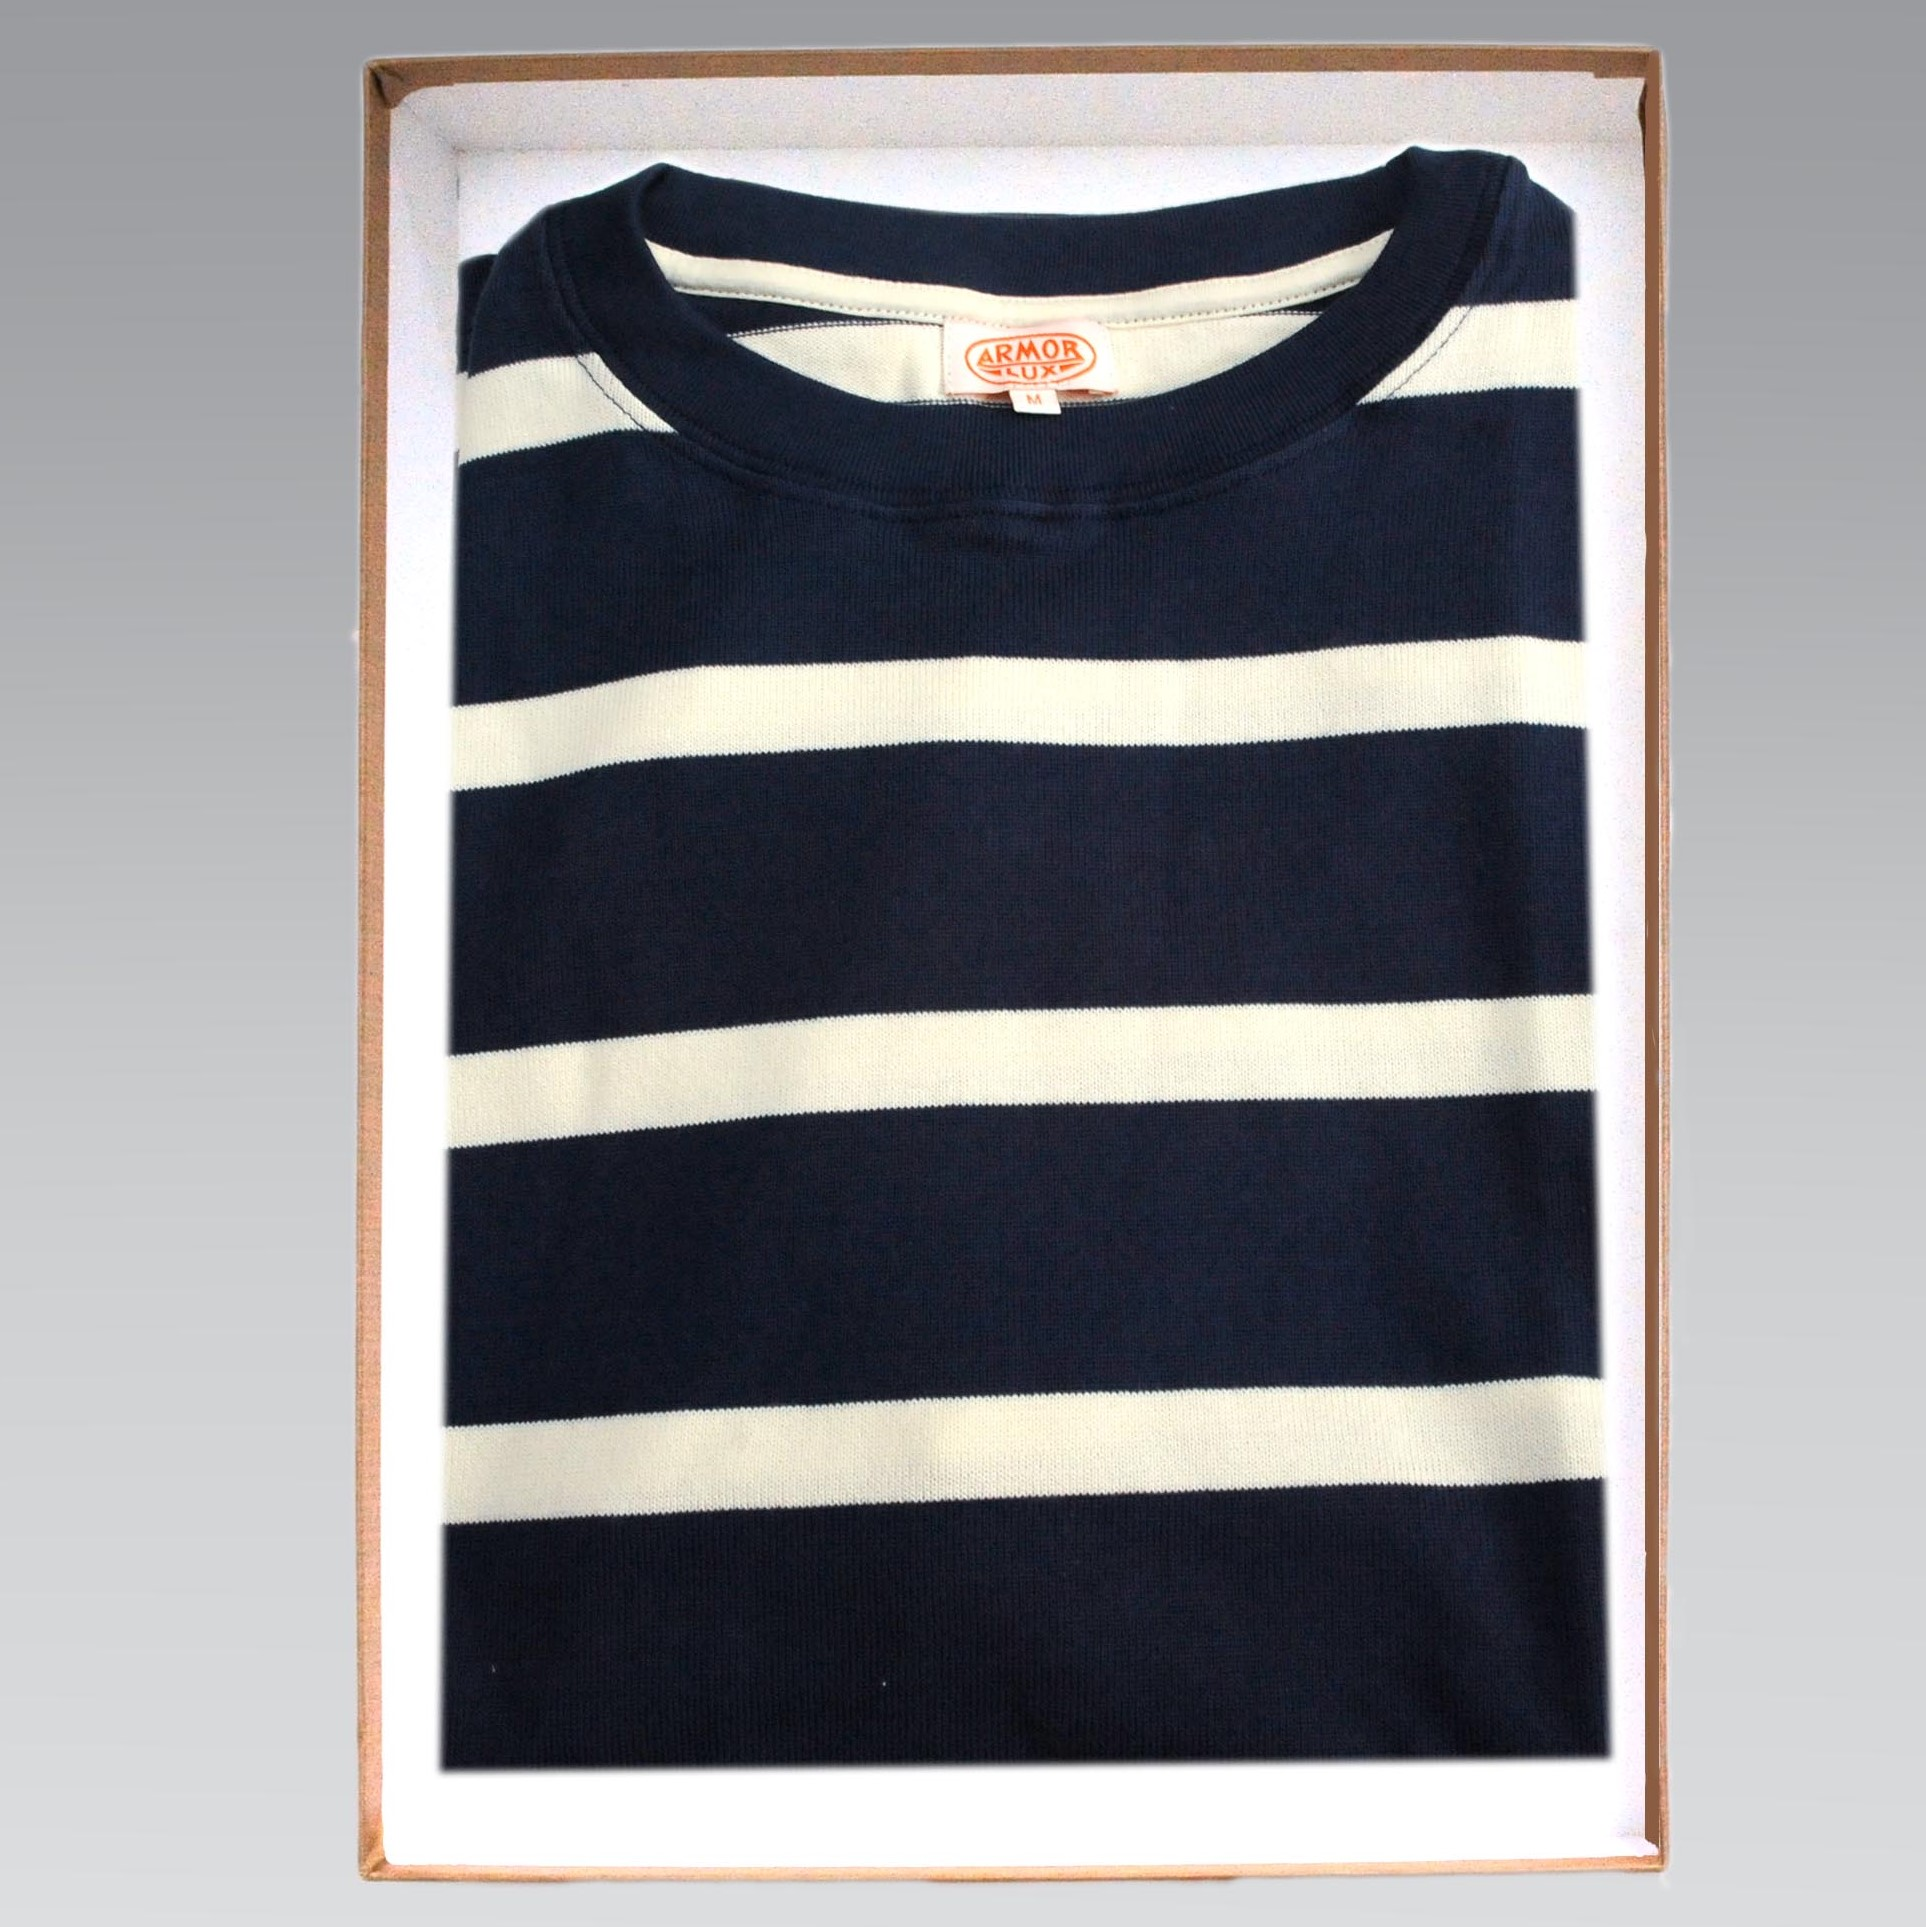 a054990a0a Armor Lux – Short Sleeve Cotton Breton Stripe T Shirt in Navy with White